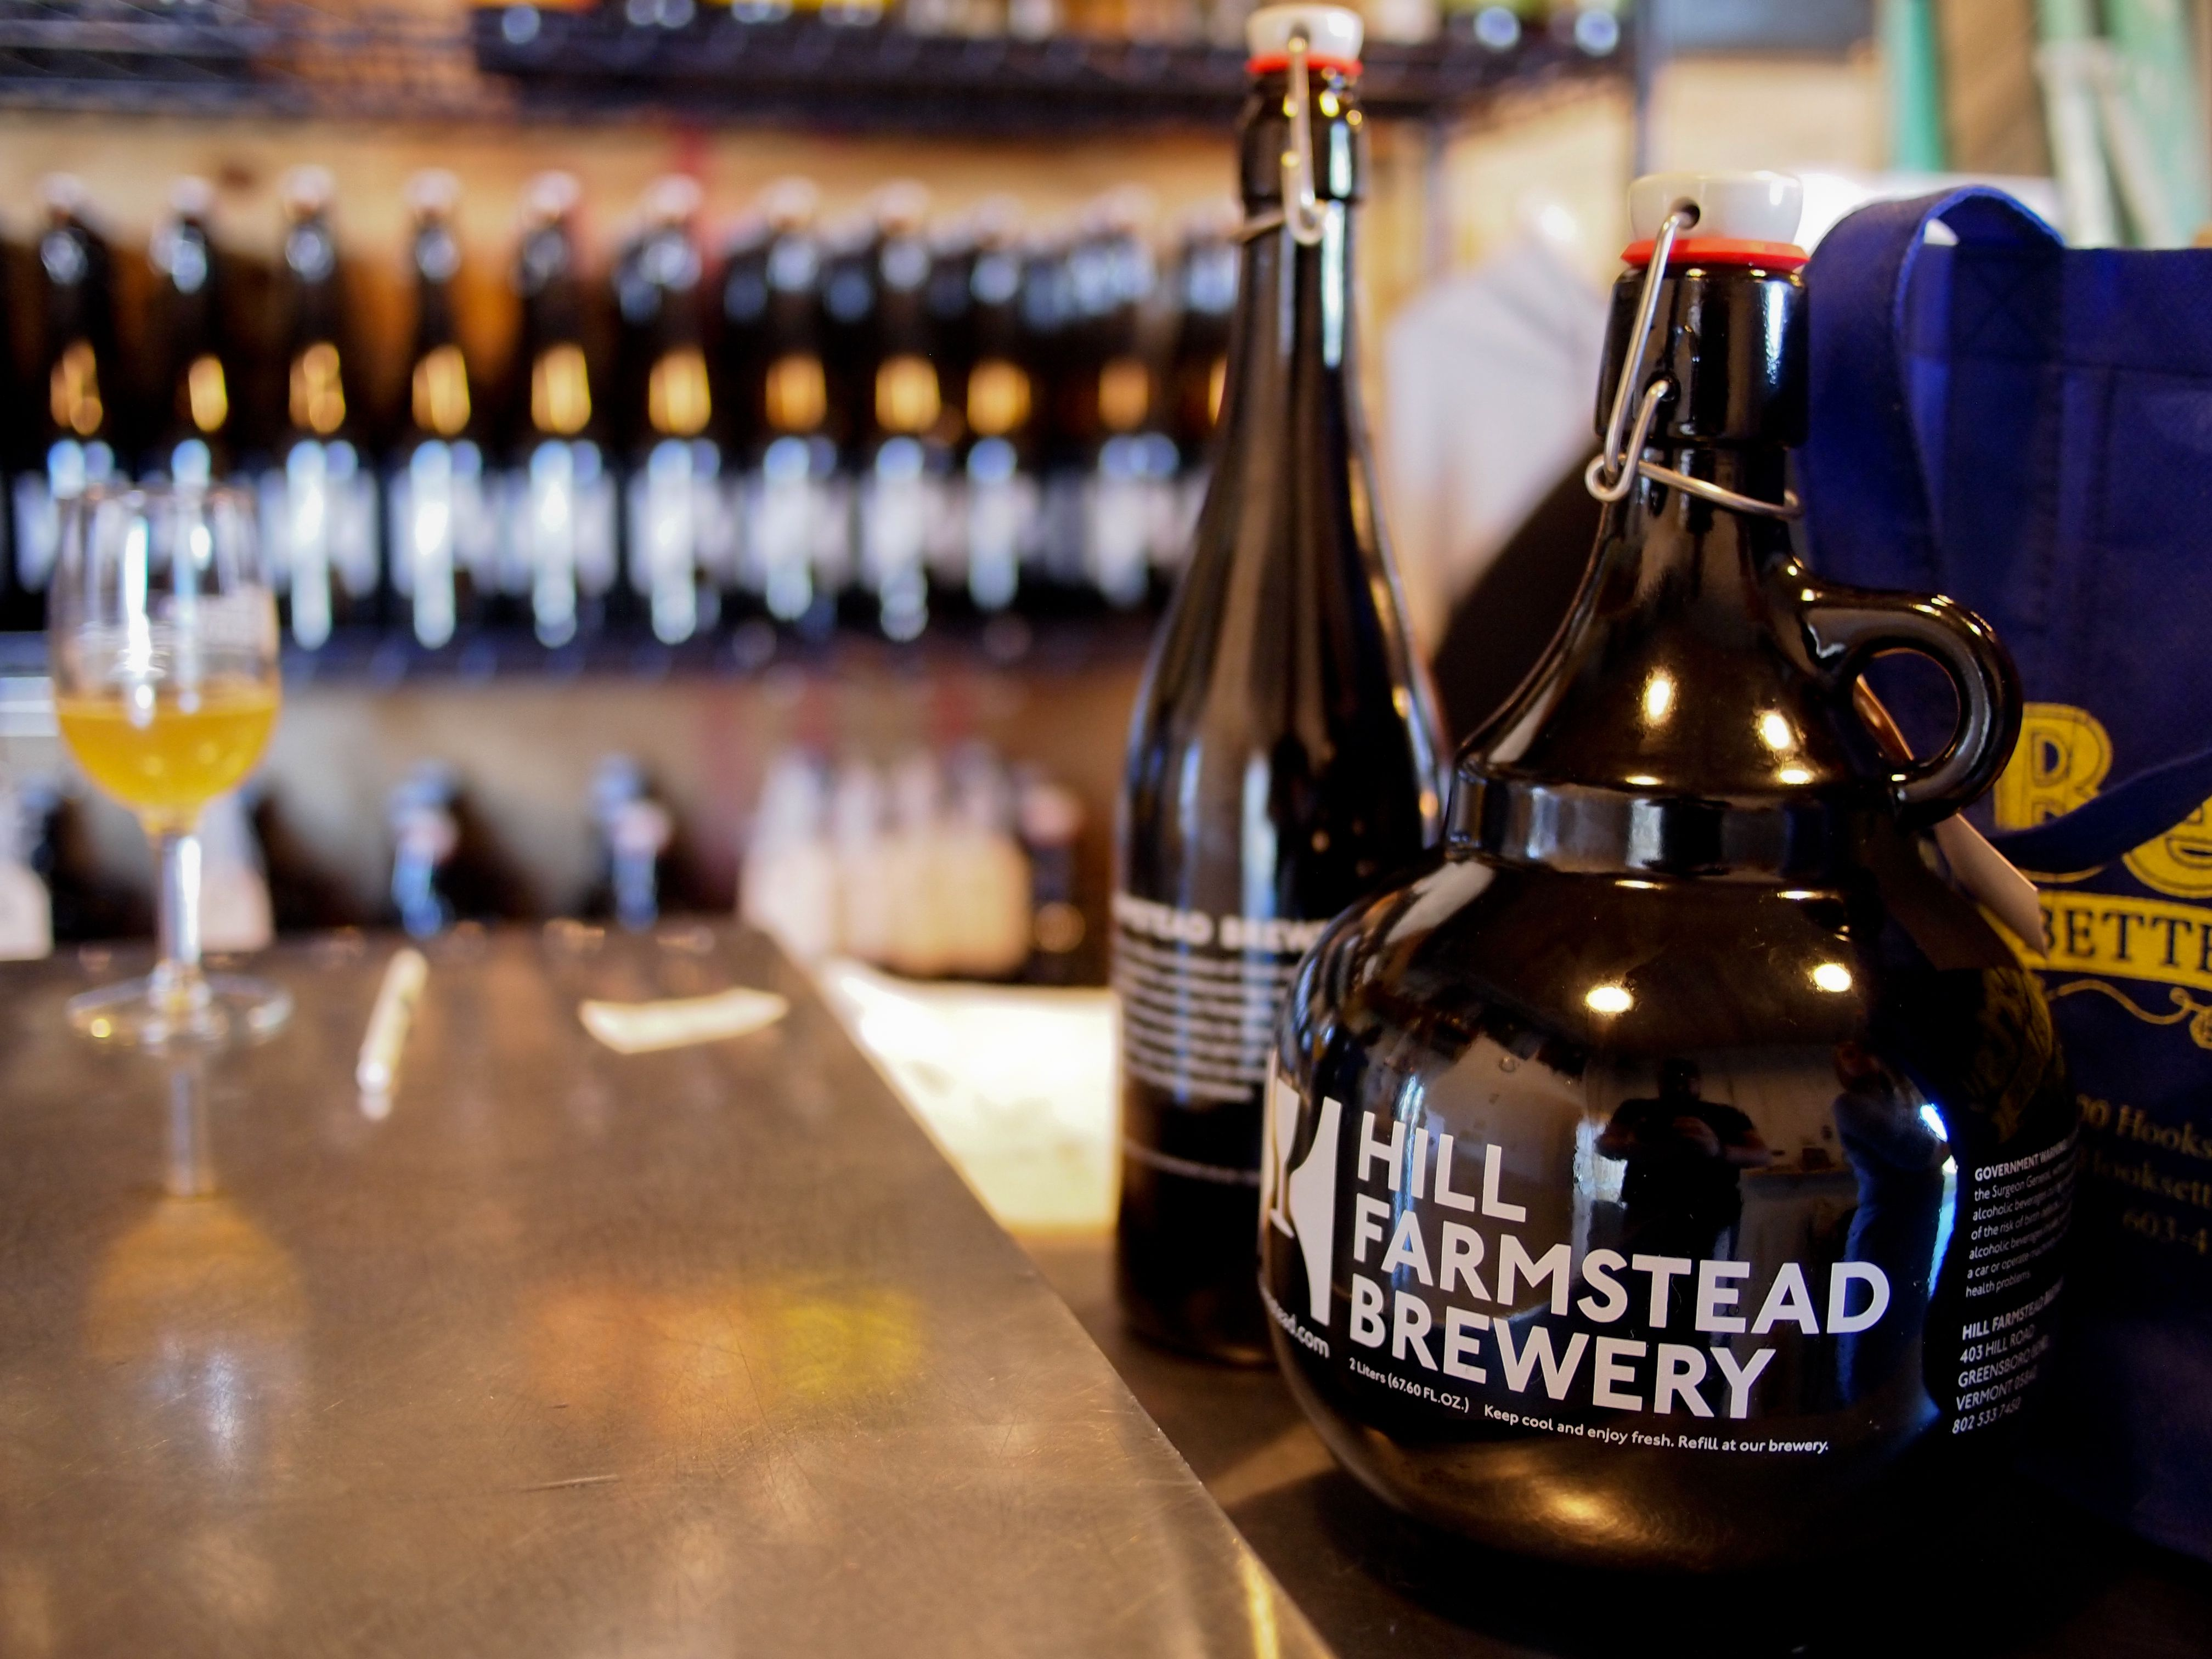 Growler with Hill Farmstead Brewery printed on it